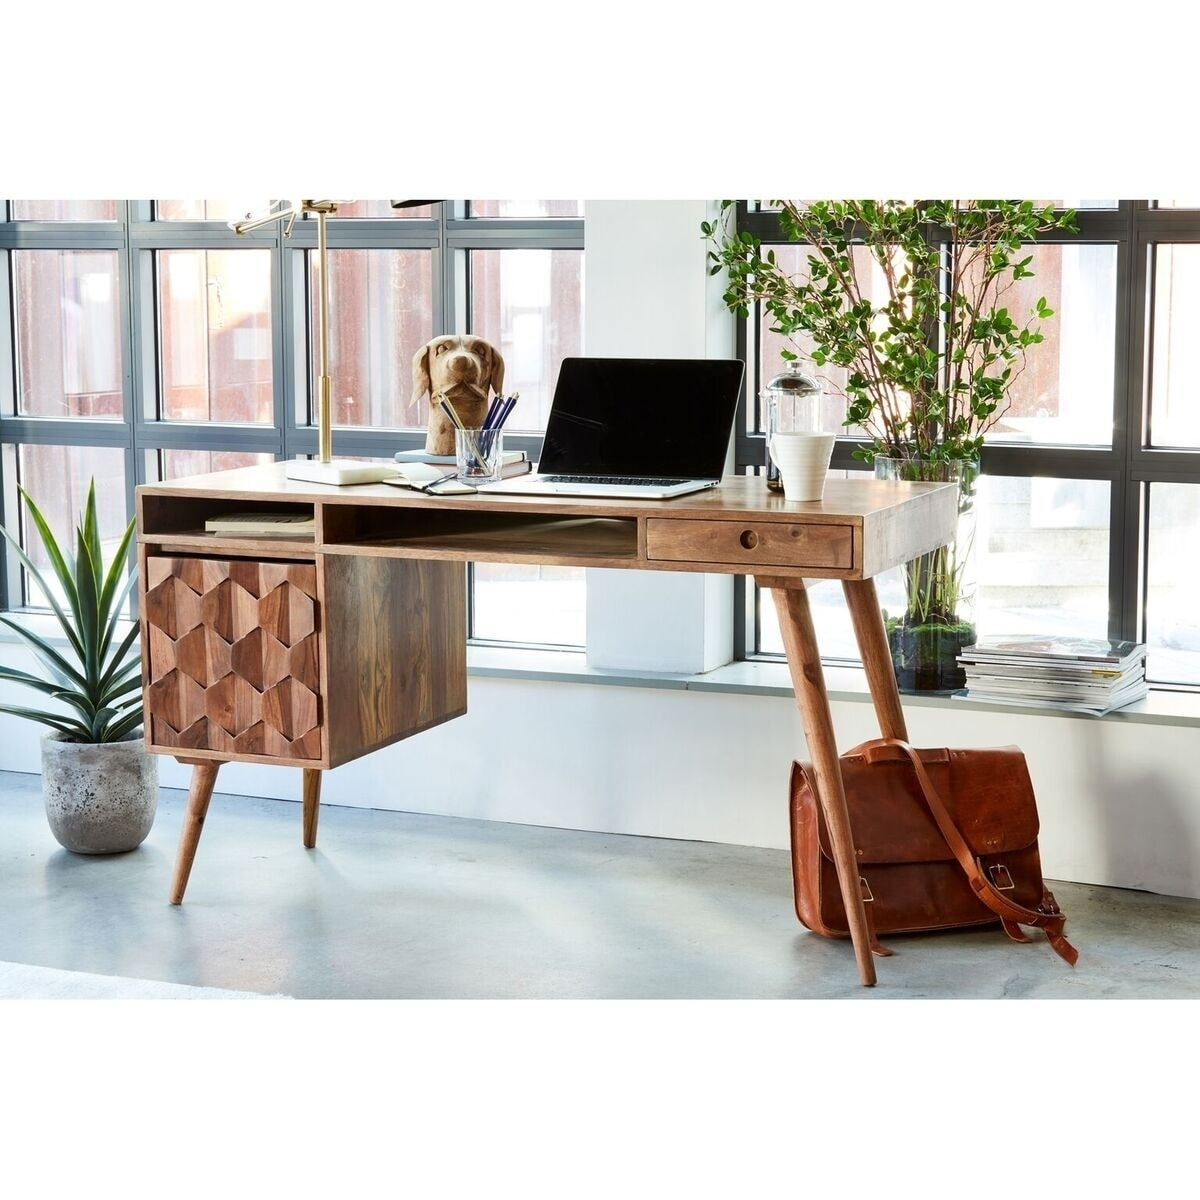 Image of: Shop Black Friday Deals On Aurelle Home Oslo Mid Century Modern Desk Overstock 10608352